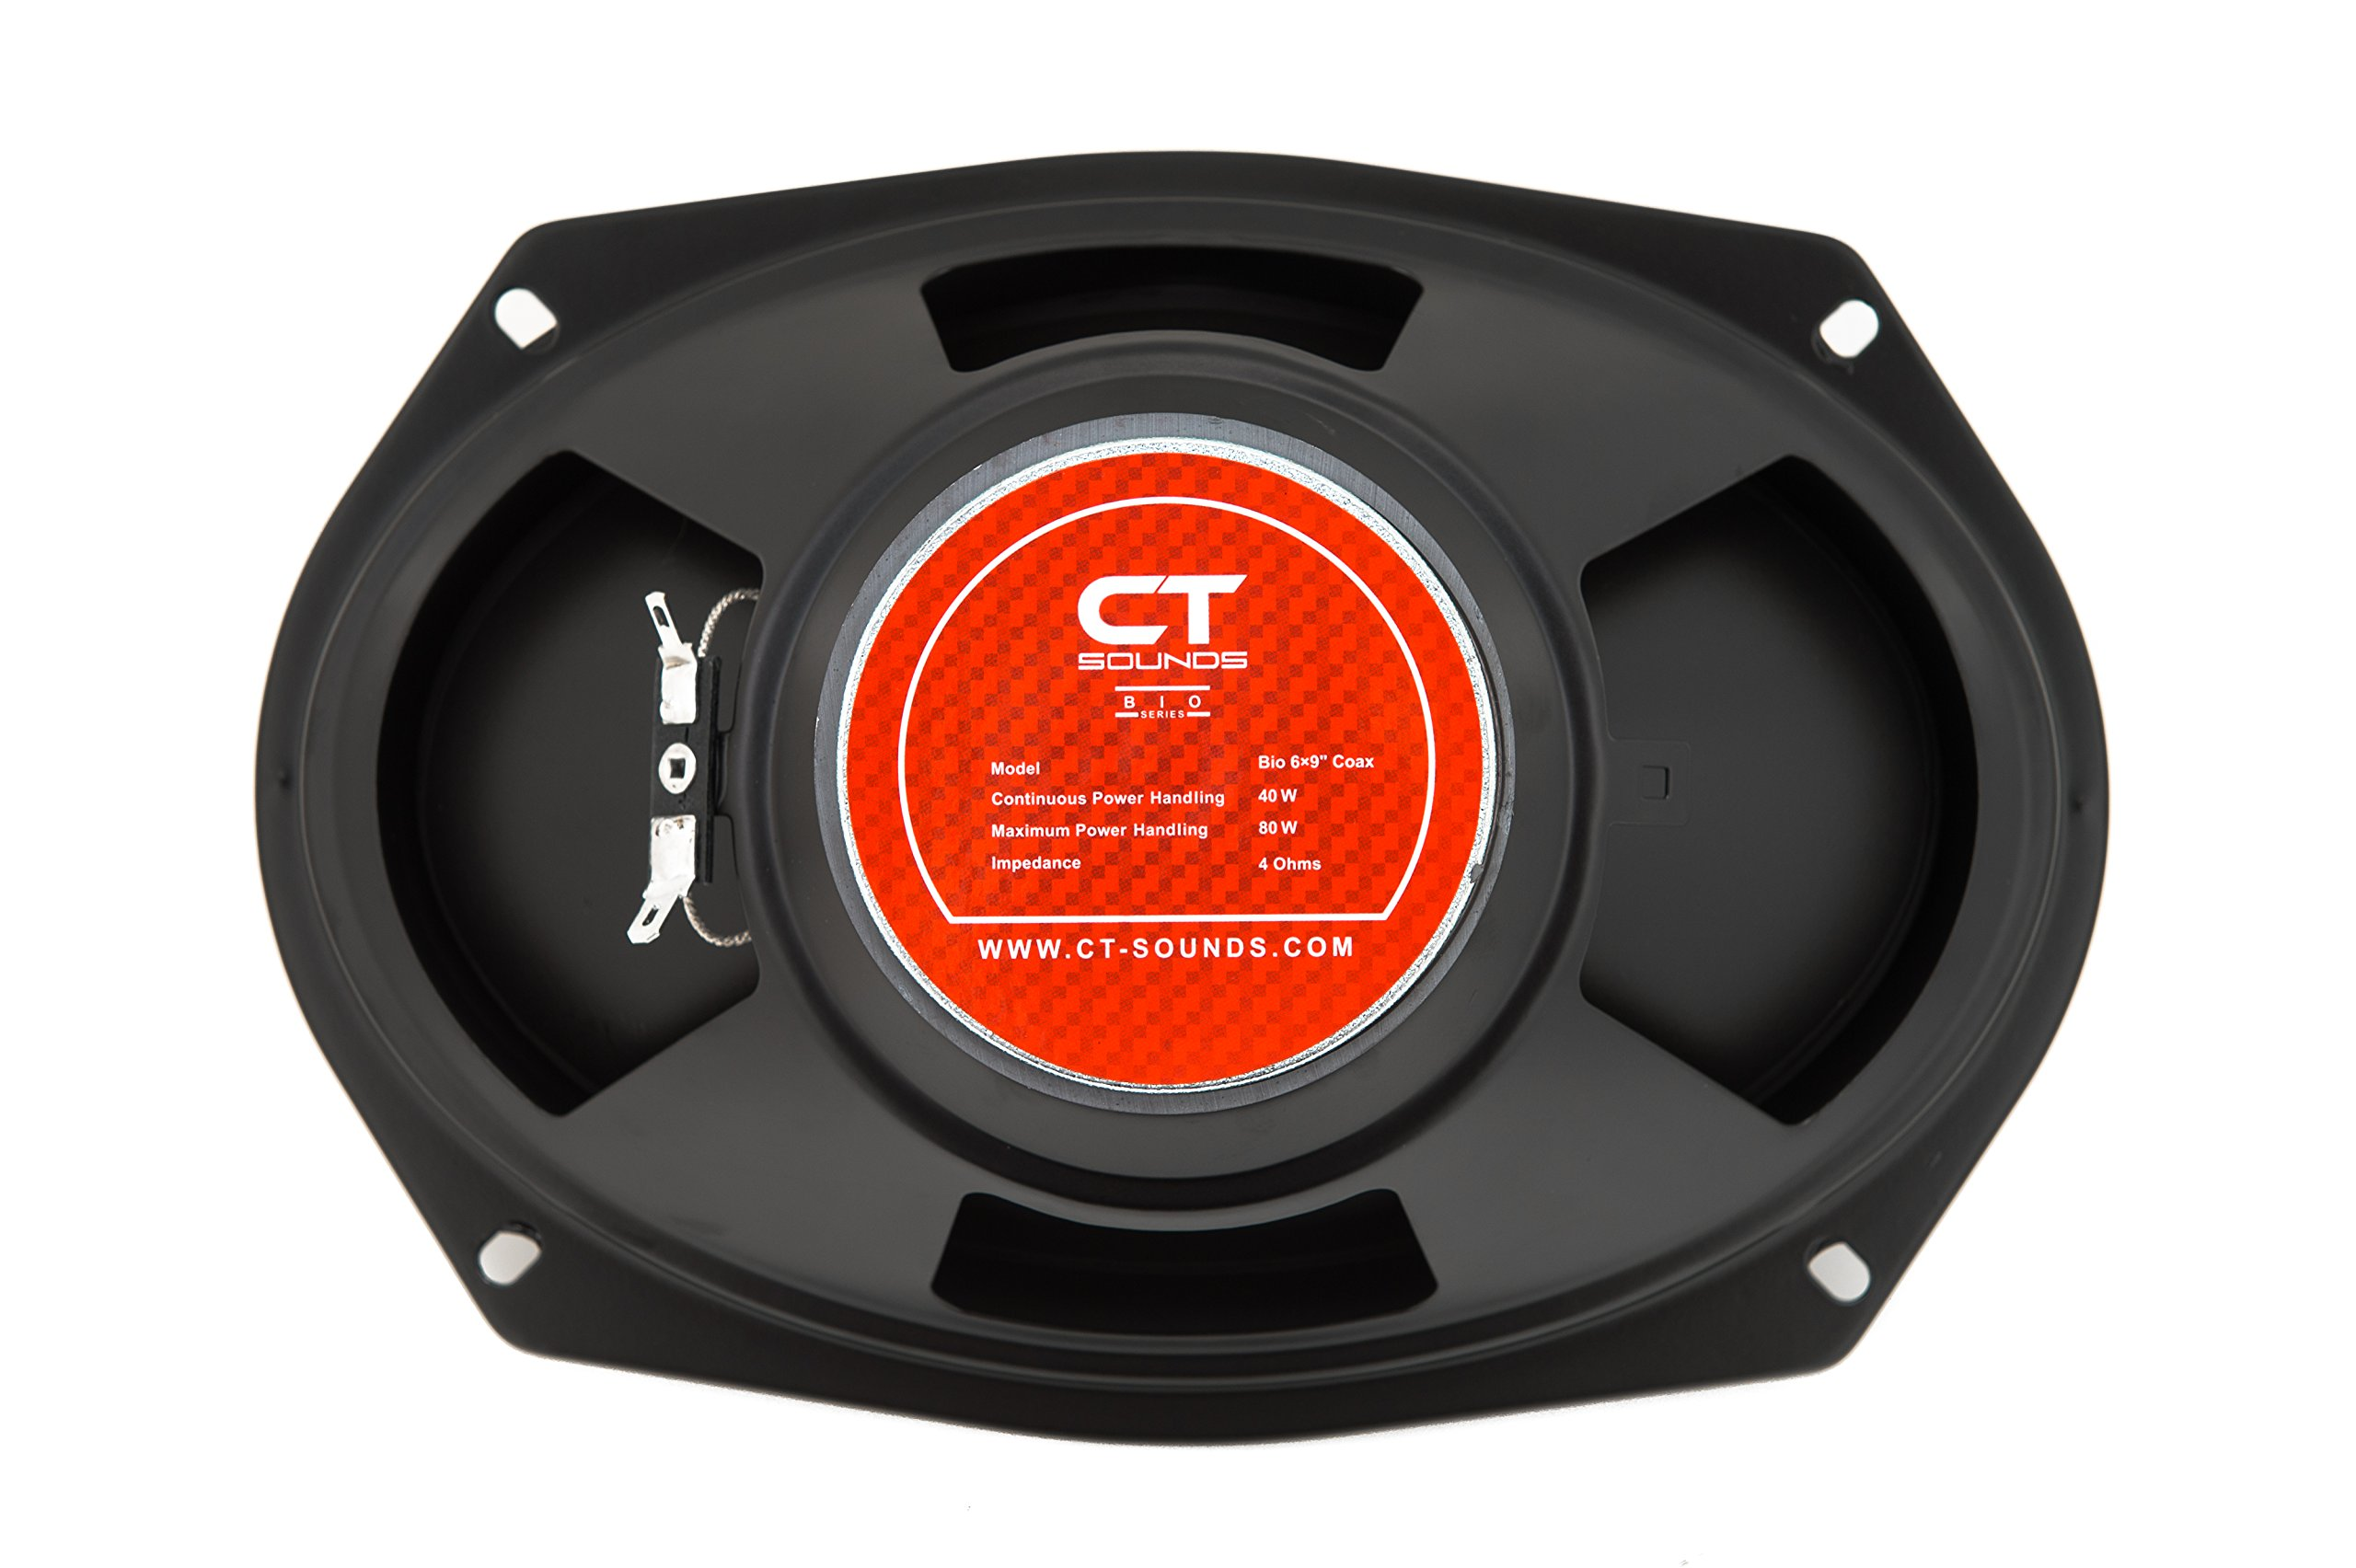 CT Sounds Bio 6x9 Inch 2 Way Silk Dome Coaxial Car Speakers (Pair) by CT Sounds (Image #6)